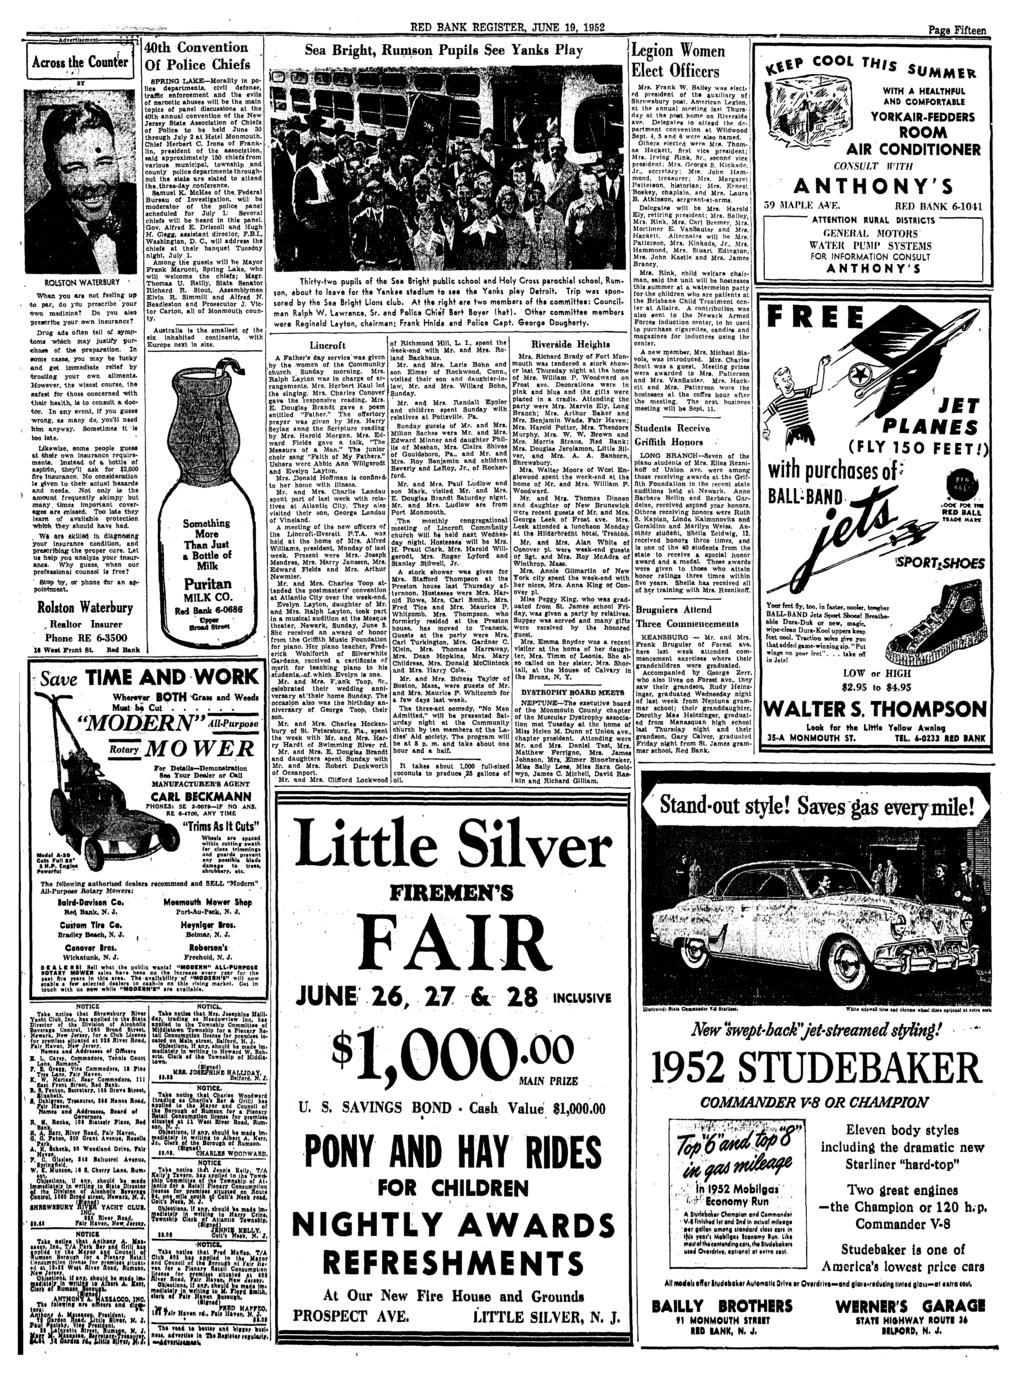 Red Bank Register 10 Cents Pdf Imo X6 Lucky Advertistrnent Across The Counter Rolston Waterbury When You Arnot Feeling Up To